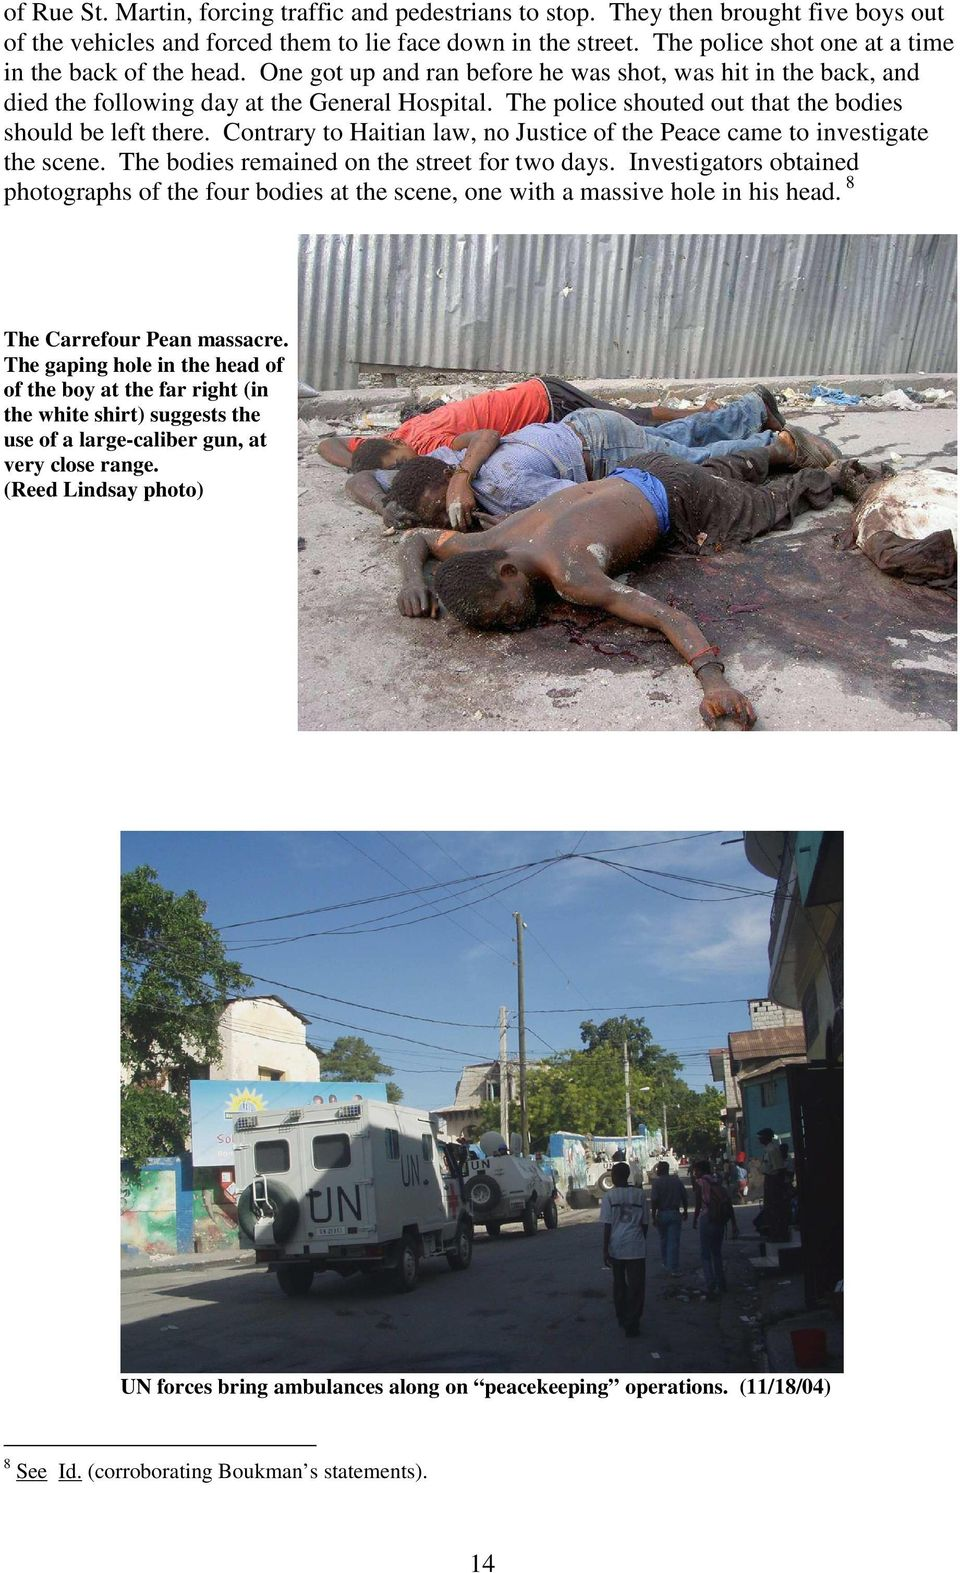 The police shouted out that the bodies should be left there. Contrary to Haitian law, no Justice of the Peace came to investigate the scene. The bodies remained on the street for two days.